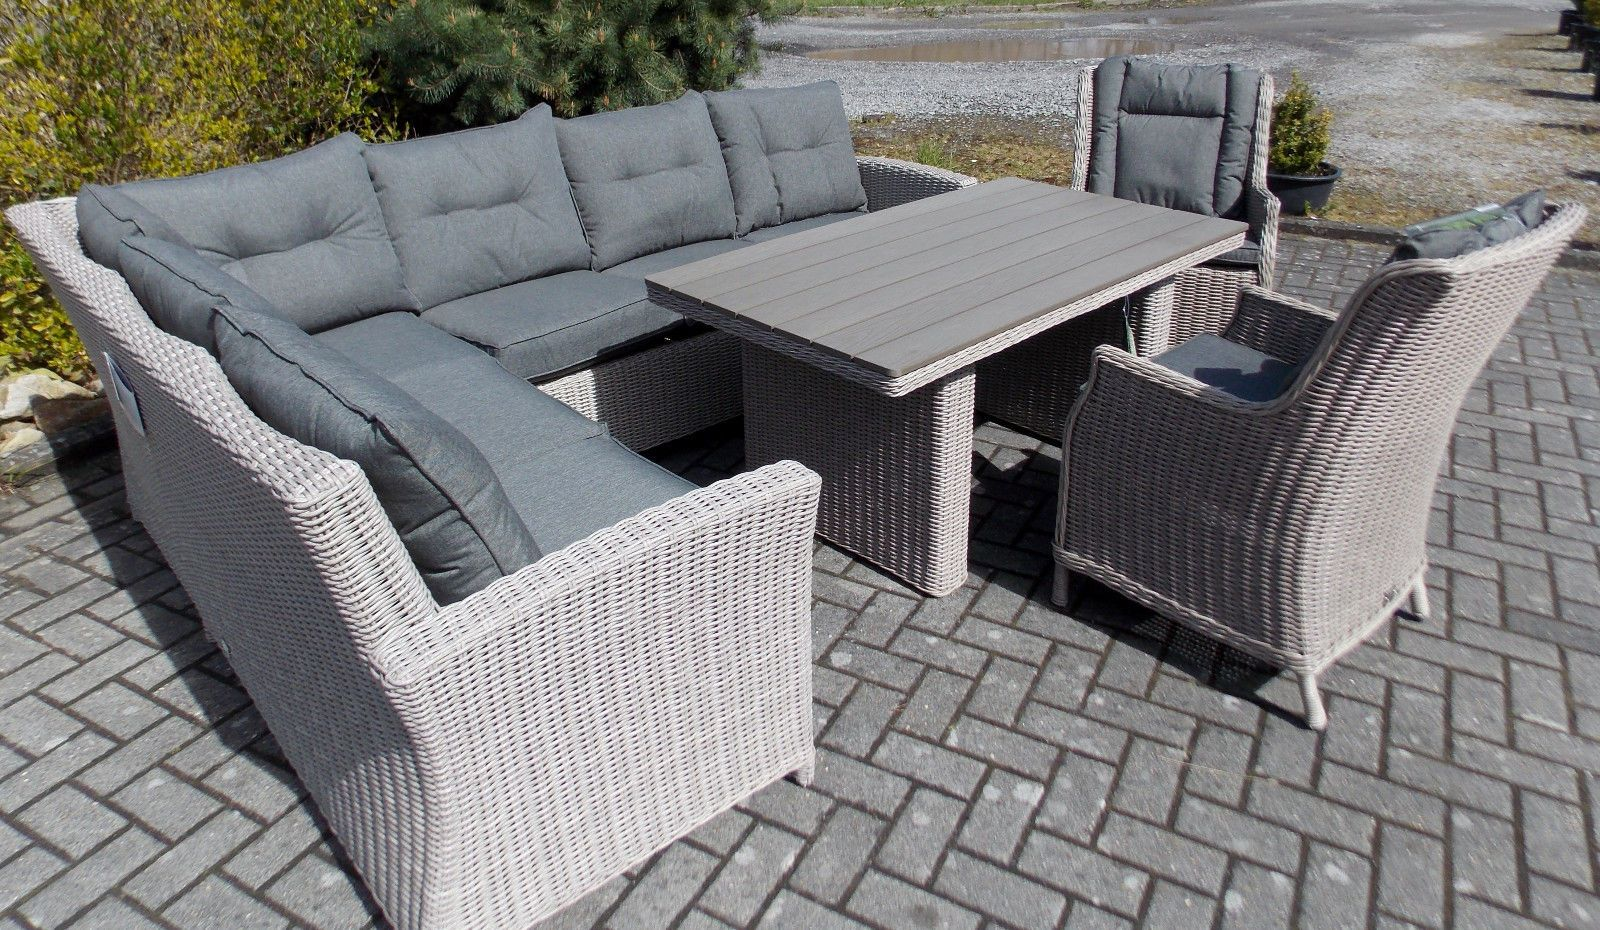 polyrattan sofaset gartenm bel lounge sitzgruppe sofa eckgruppe wine dine in garten terrasse. Black Bedroom Furniture Sets. Home Design Ideas